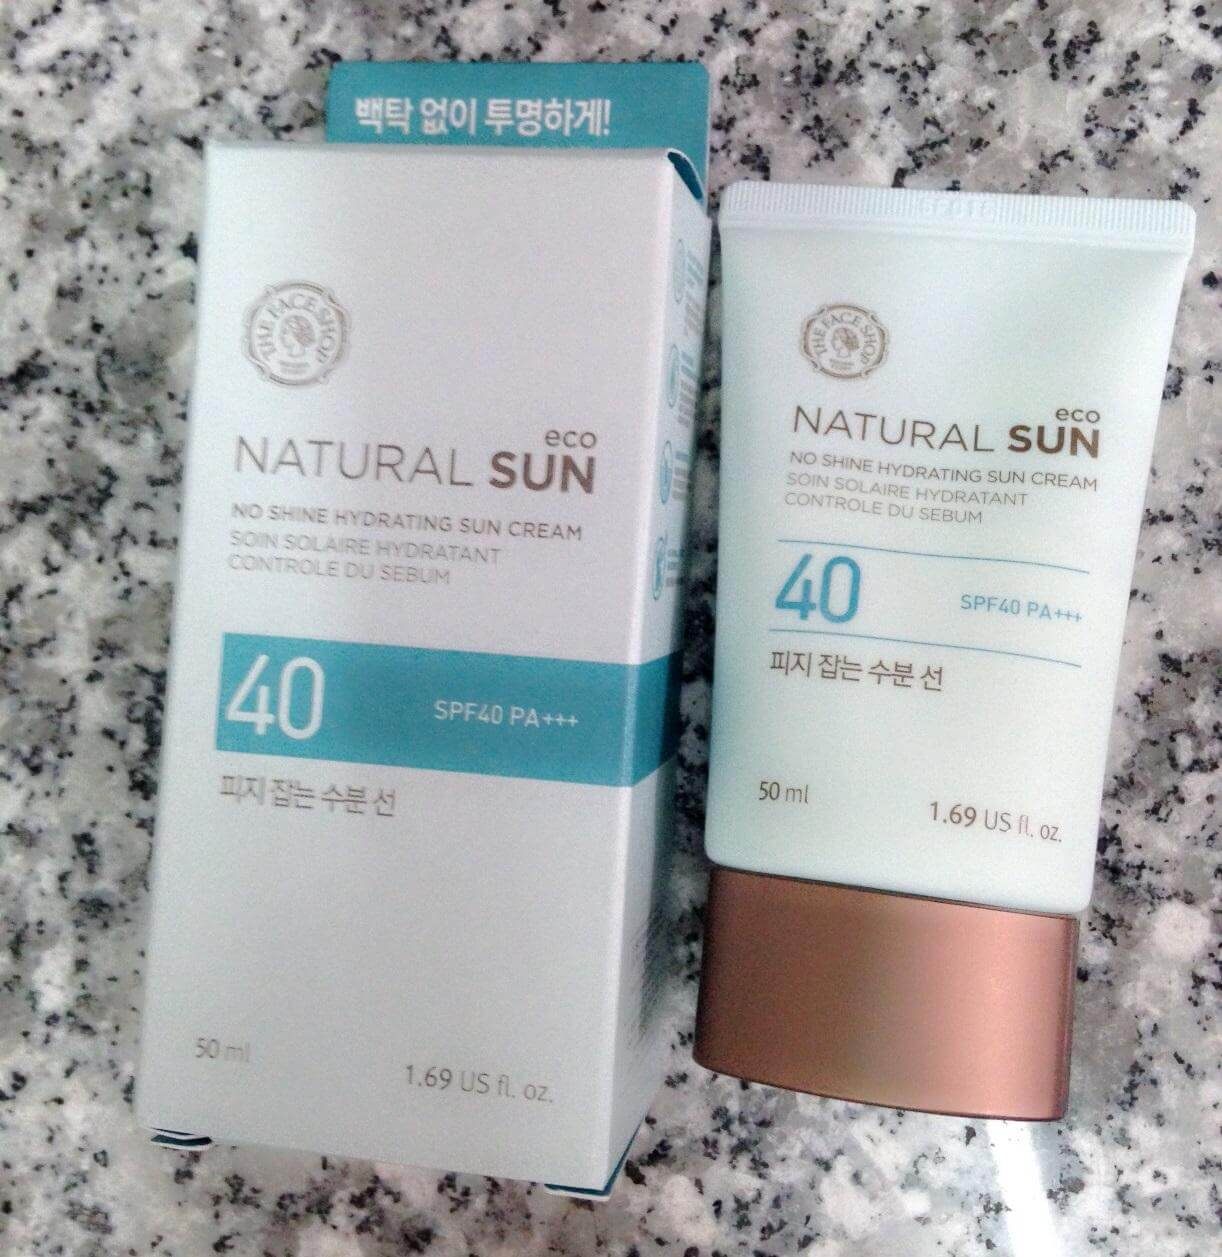 kem-chong-nang-thefaceshop-natural-sun-no-shine-hydrating-sun-cream-02